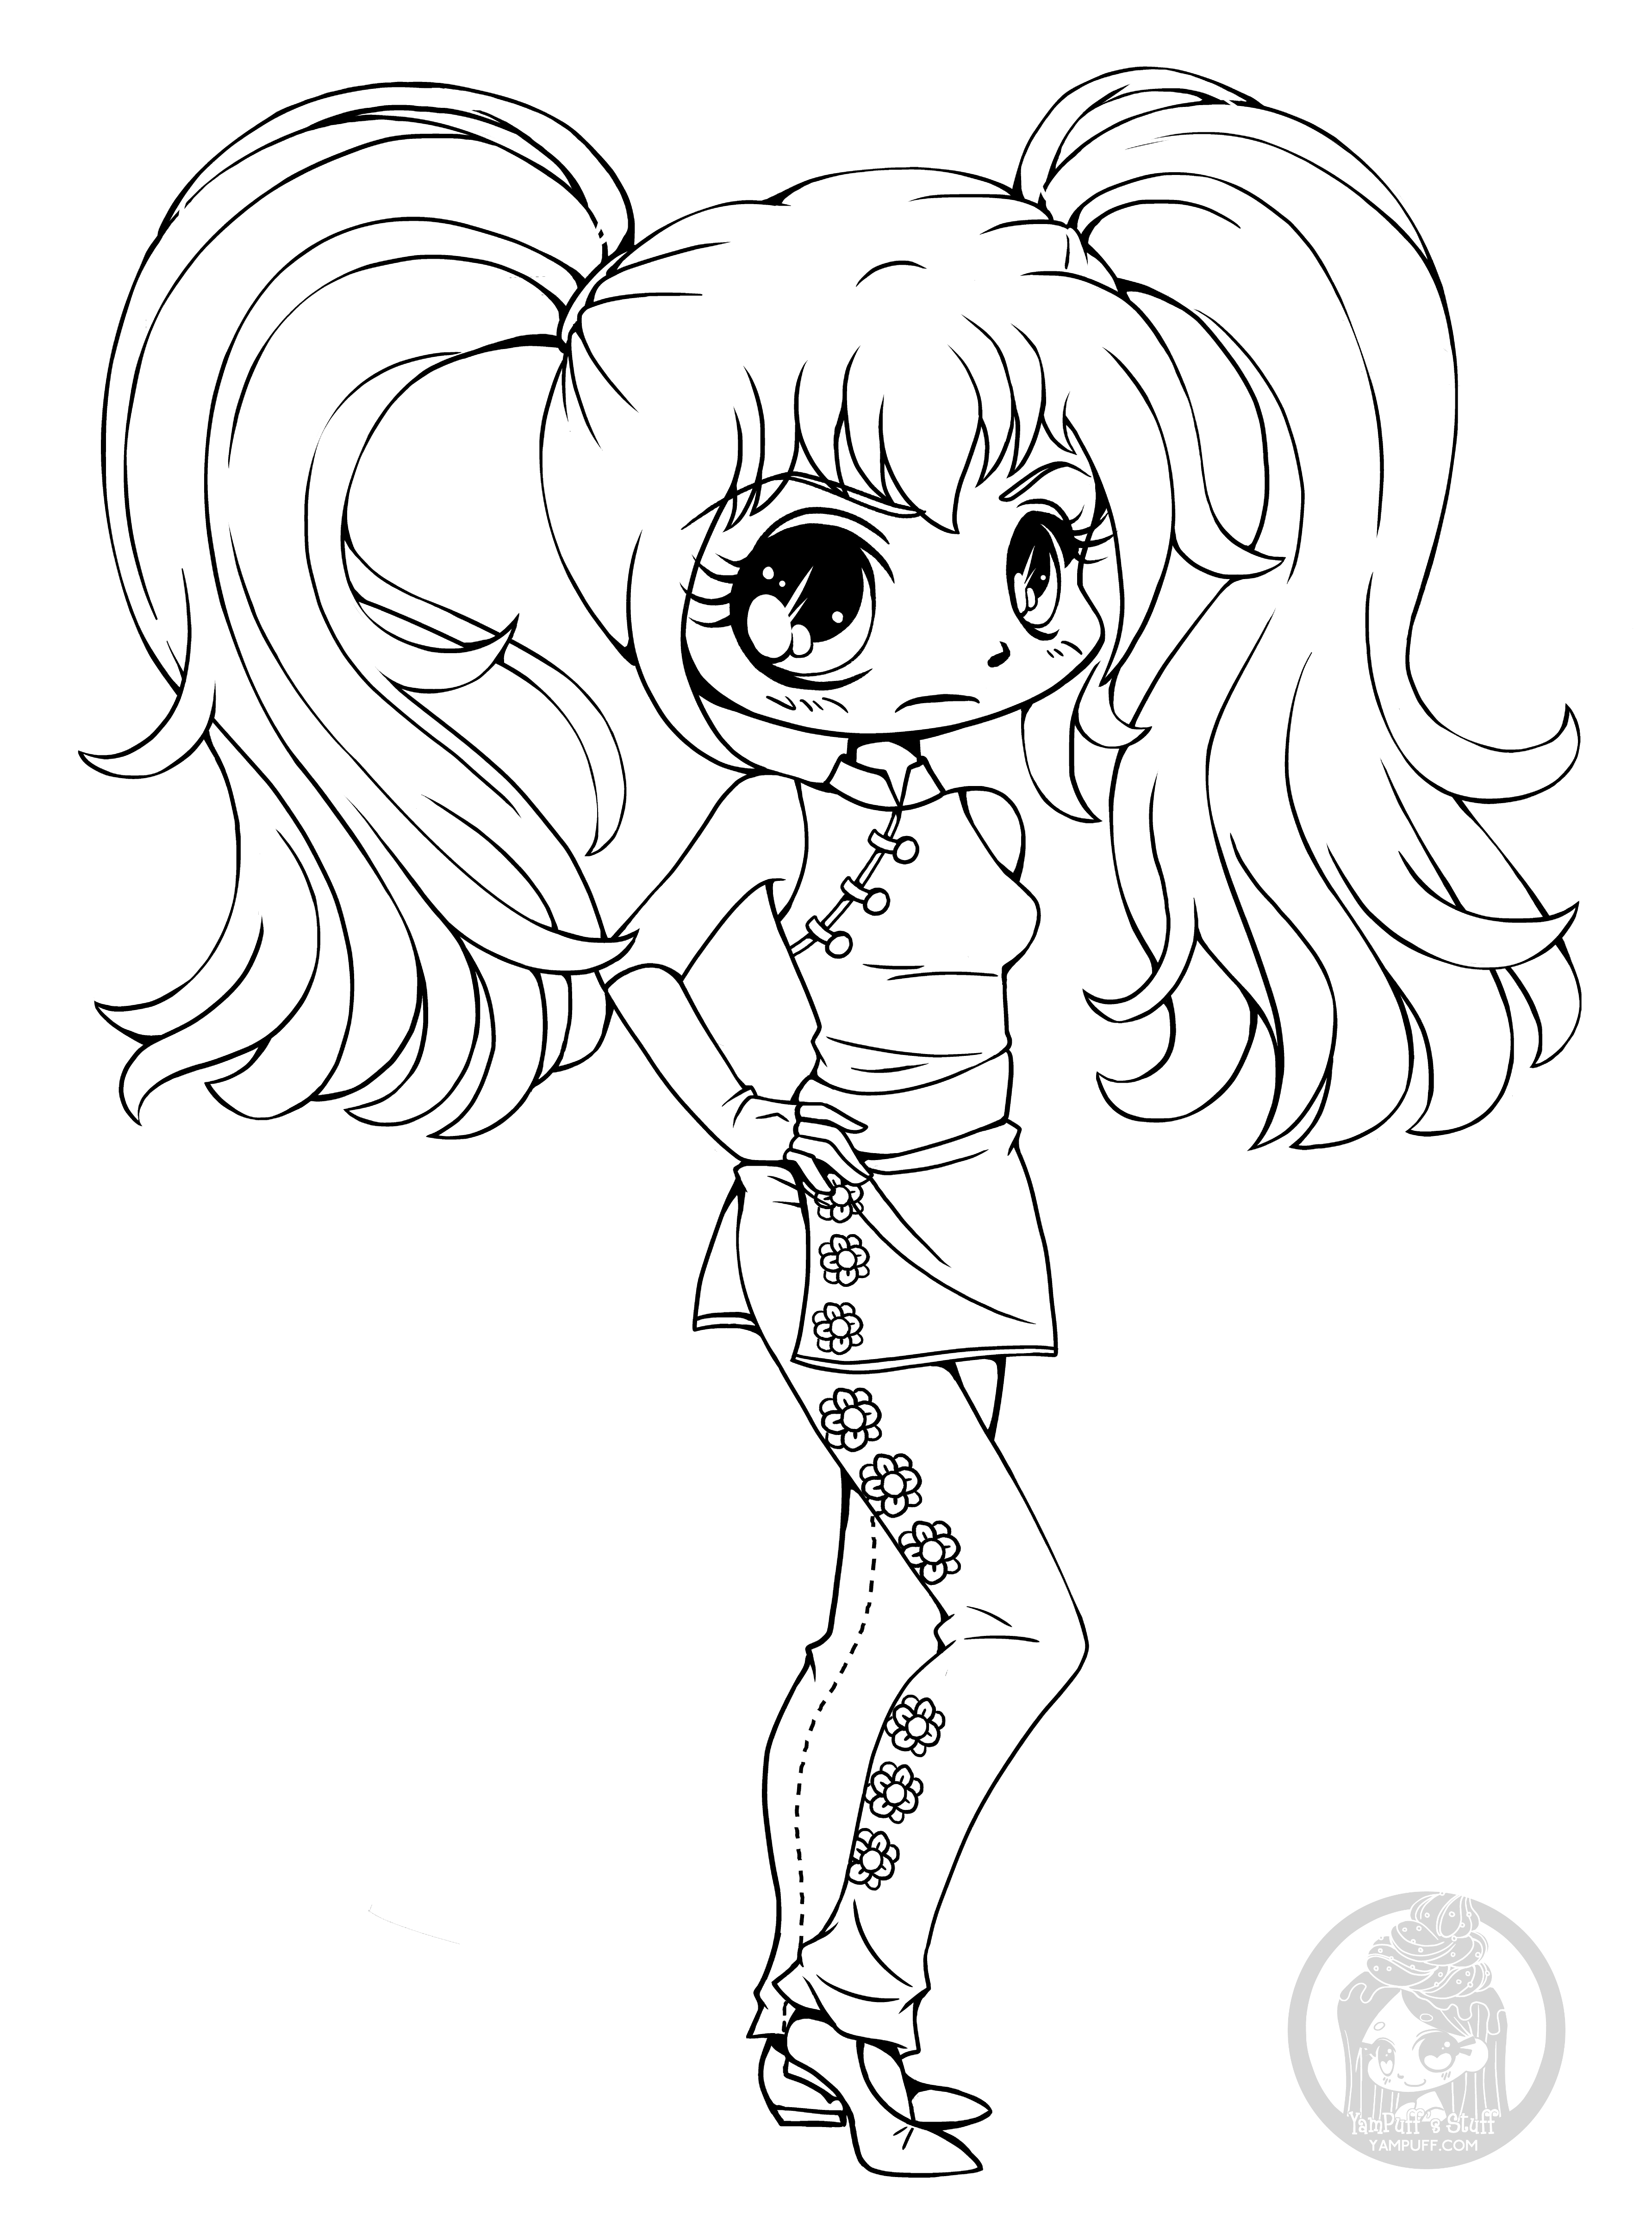 coloring pages chibi chibi coloring pages to download and print for free chibi coloring pages